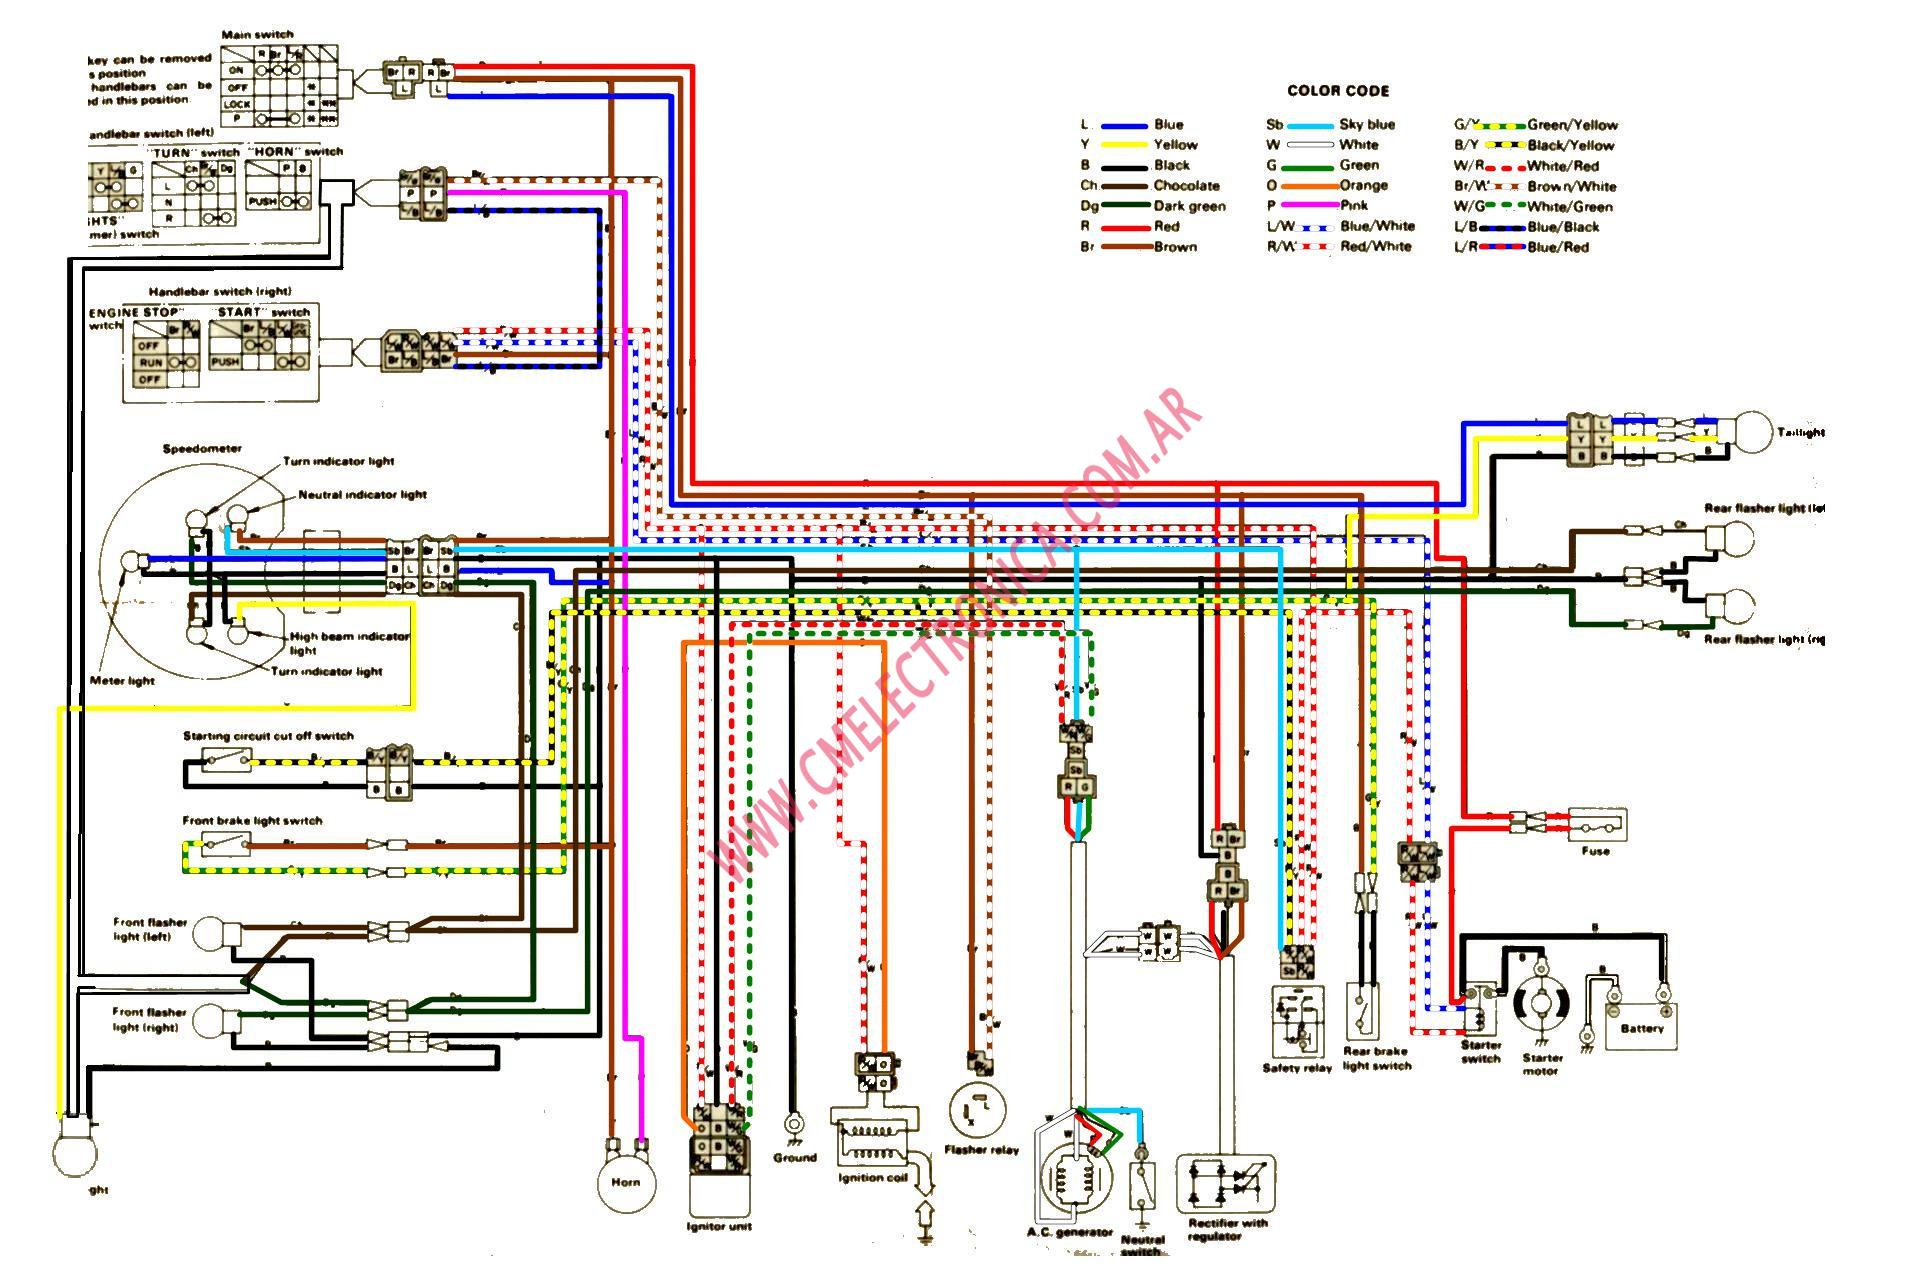 Diagram For Wiring A Yamaha Sr250 Will Be Thing 1982 Honda Cb450t Electrical No Start On Button But Outboard Banshee